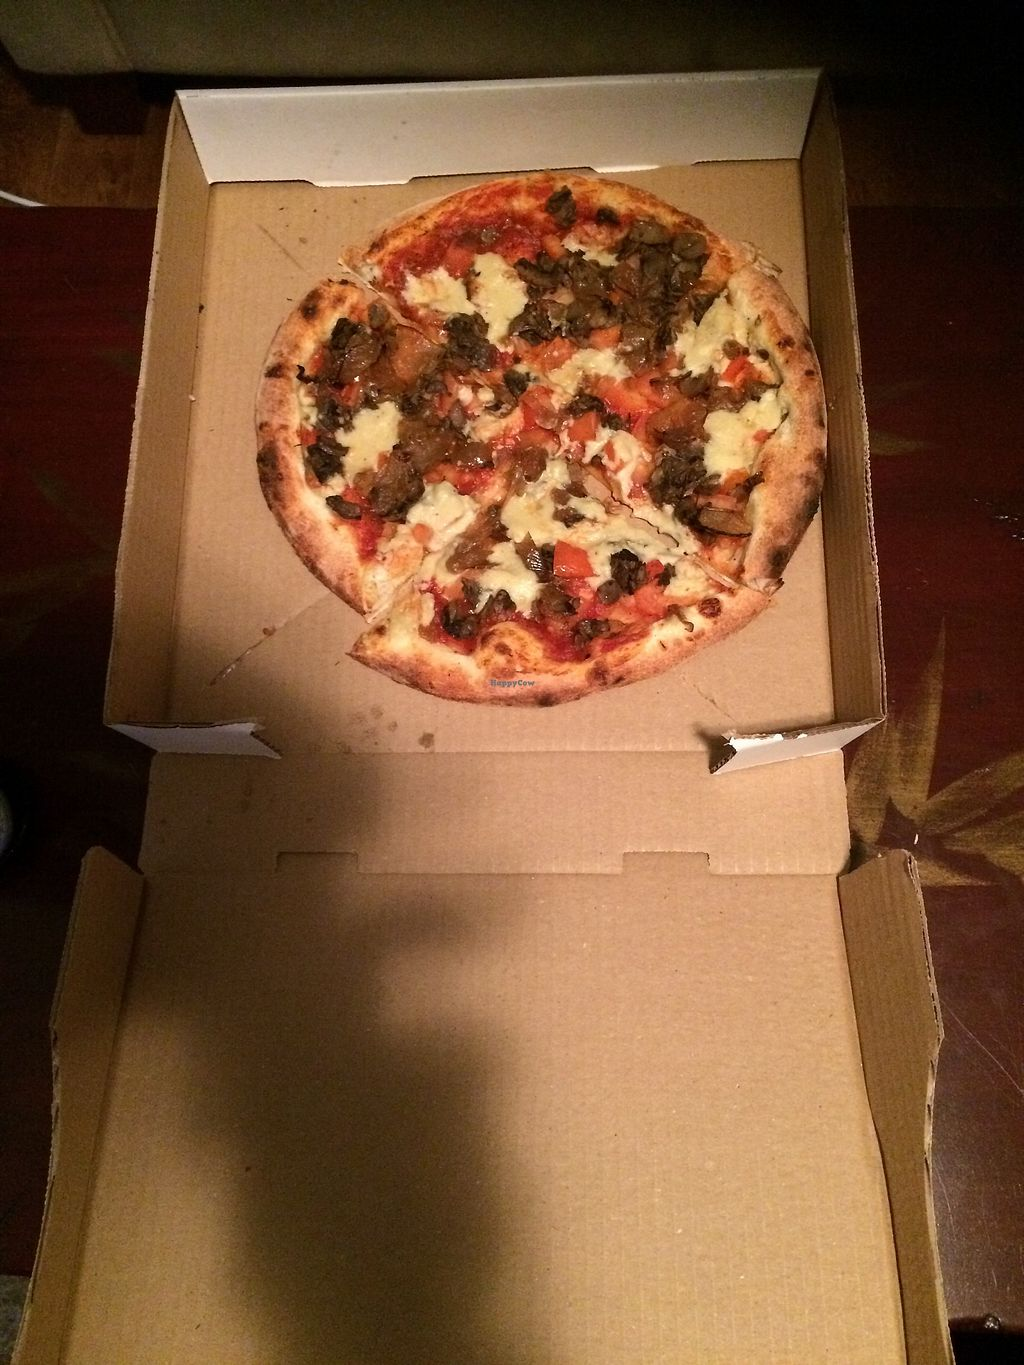 """Photo of Olio  by <a href=""""/members/profile/marturey"""">marturey</a> <br/>Another create your own pizza from Olio.  This one had tomato sauce with the cashew based mozzarella cheese.  mushrooms, diced tomatoes, and caramelized onions.   <br/> March 31, 2018  - <a href='/contact/abuse/image/110443/378816'>Report</a>"""